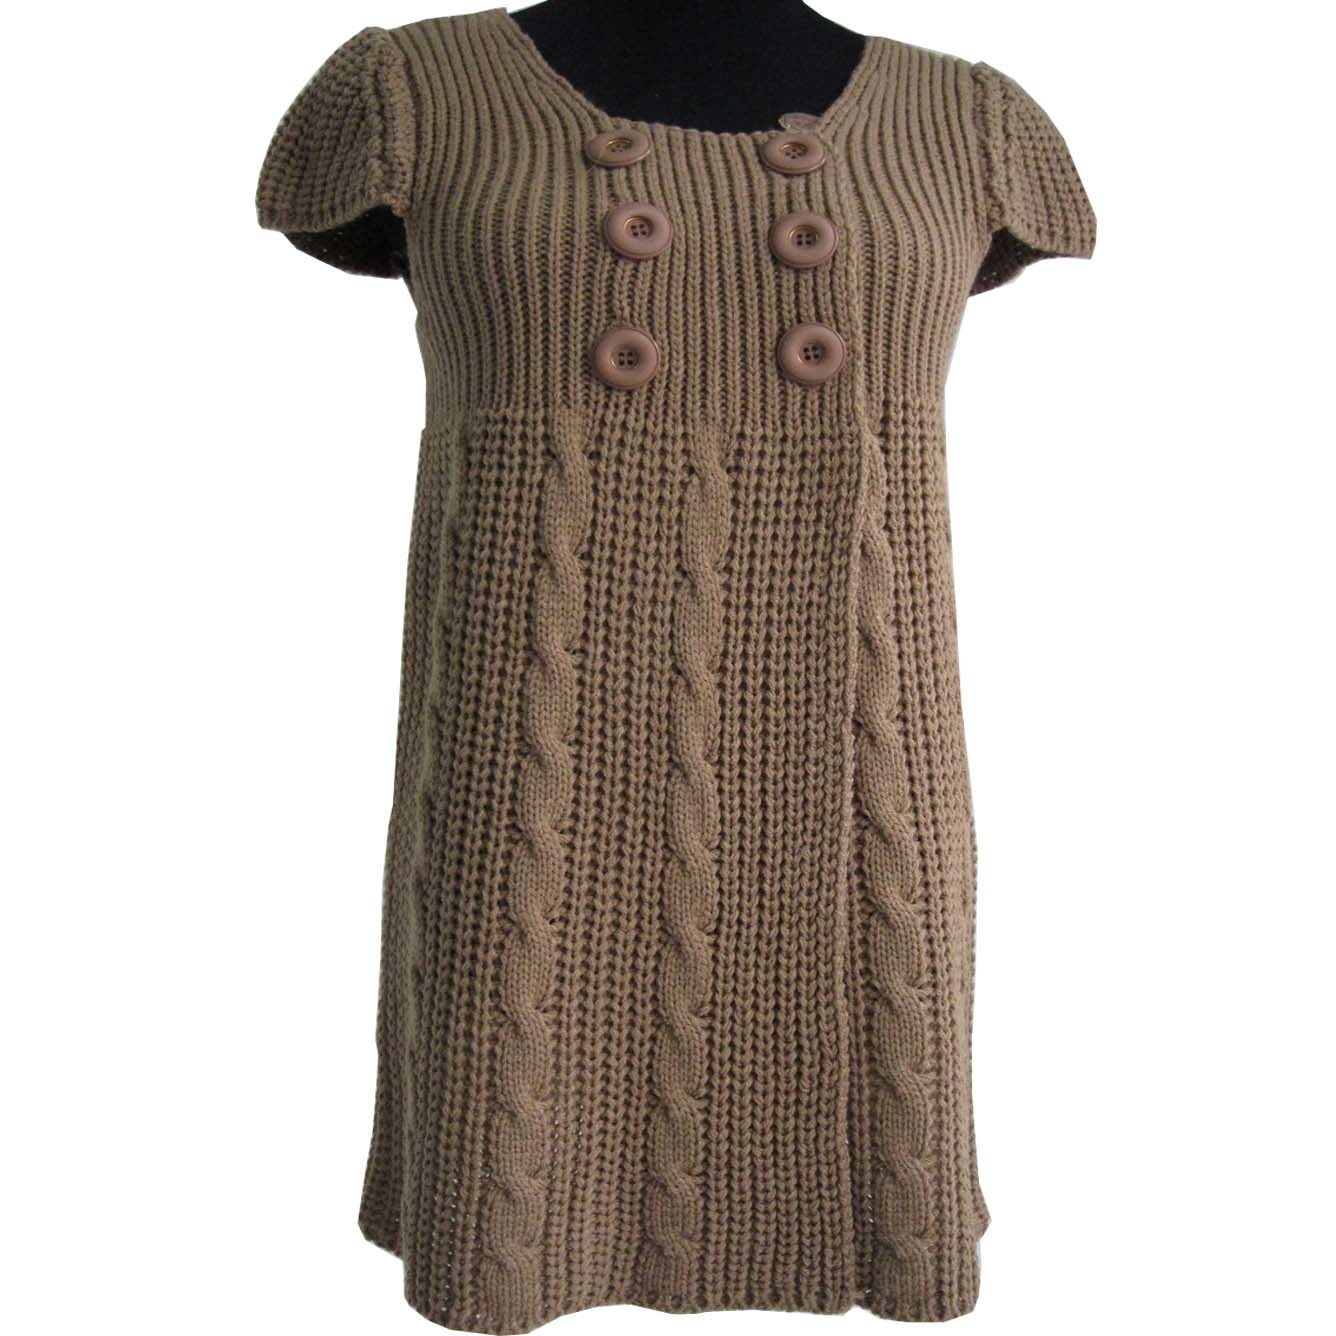 Sweater Knit : Knit dresses for women